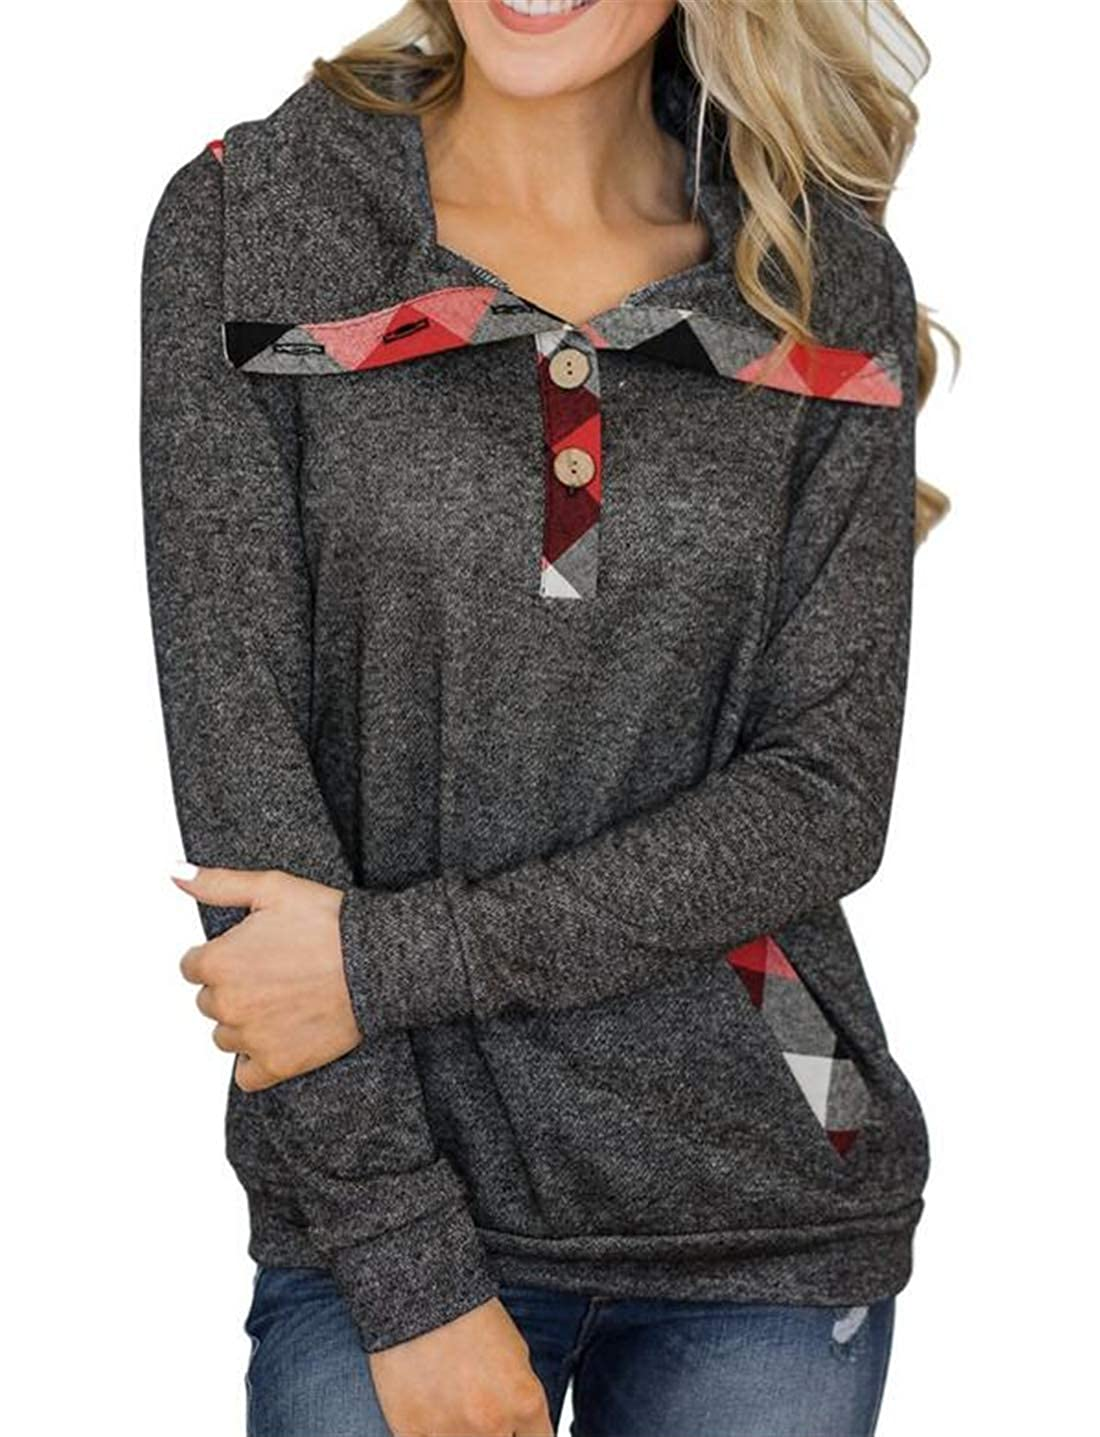 YYear Womens Solid Plaid Check Casual Two Button Pocket Lapel Pullover Sweatshirt